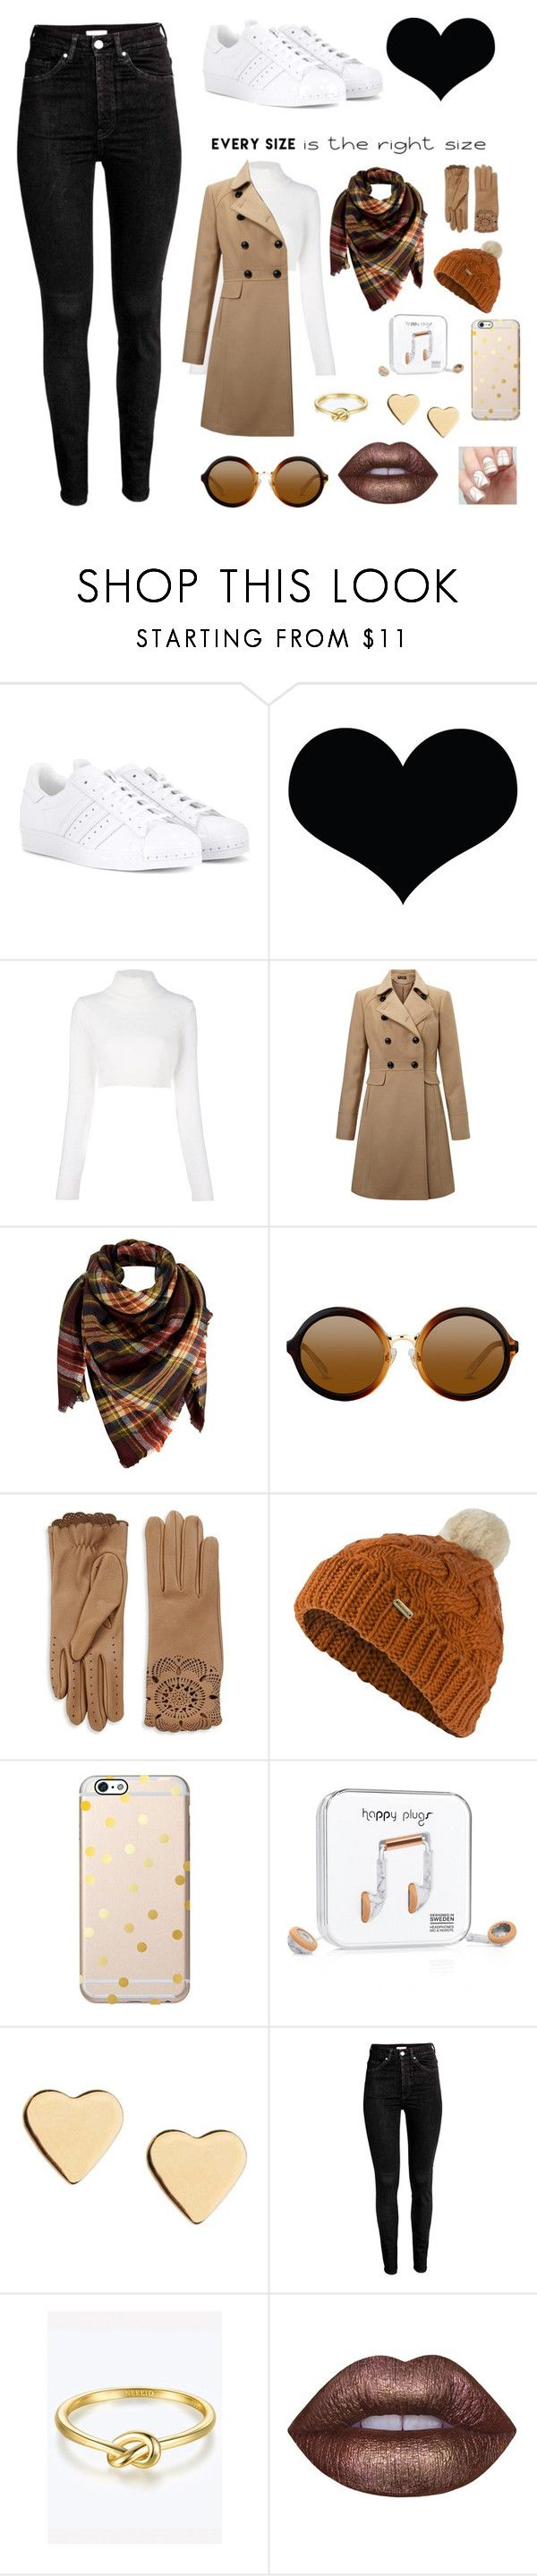 """Untitled #43"" by hilaryscragg ❤ liked on Polyvore featuring adidas Originals, Brika, Balmain, Miss Selfridge, Peach Couture, Burberry, Barbour, Happy Plugs, Lipsy and Lime Crime"